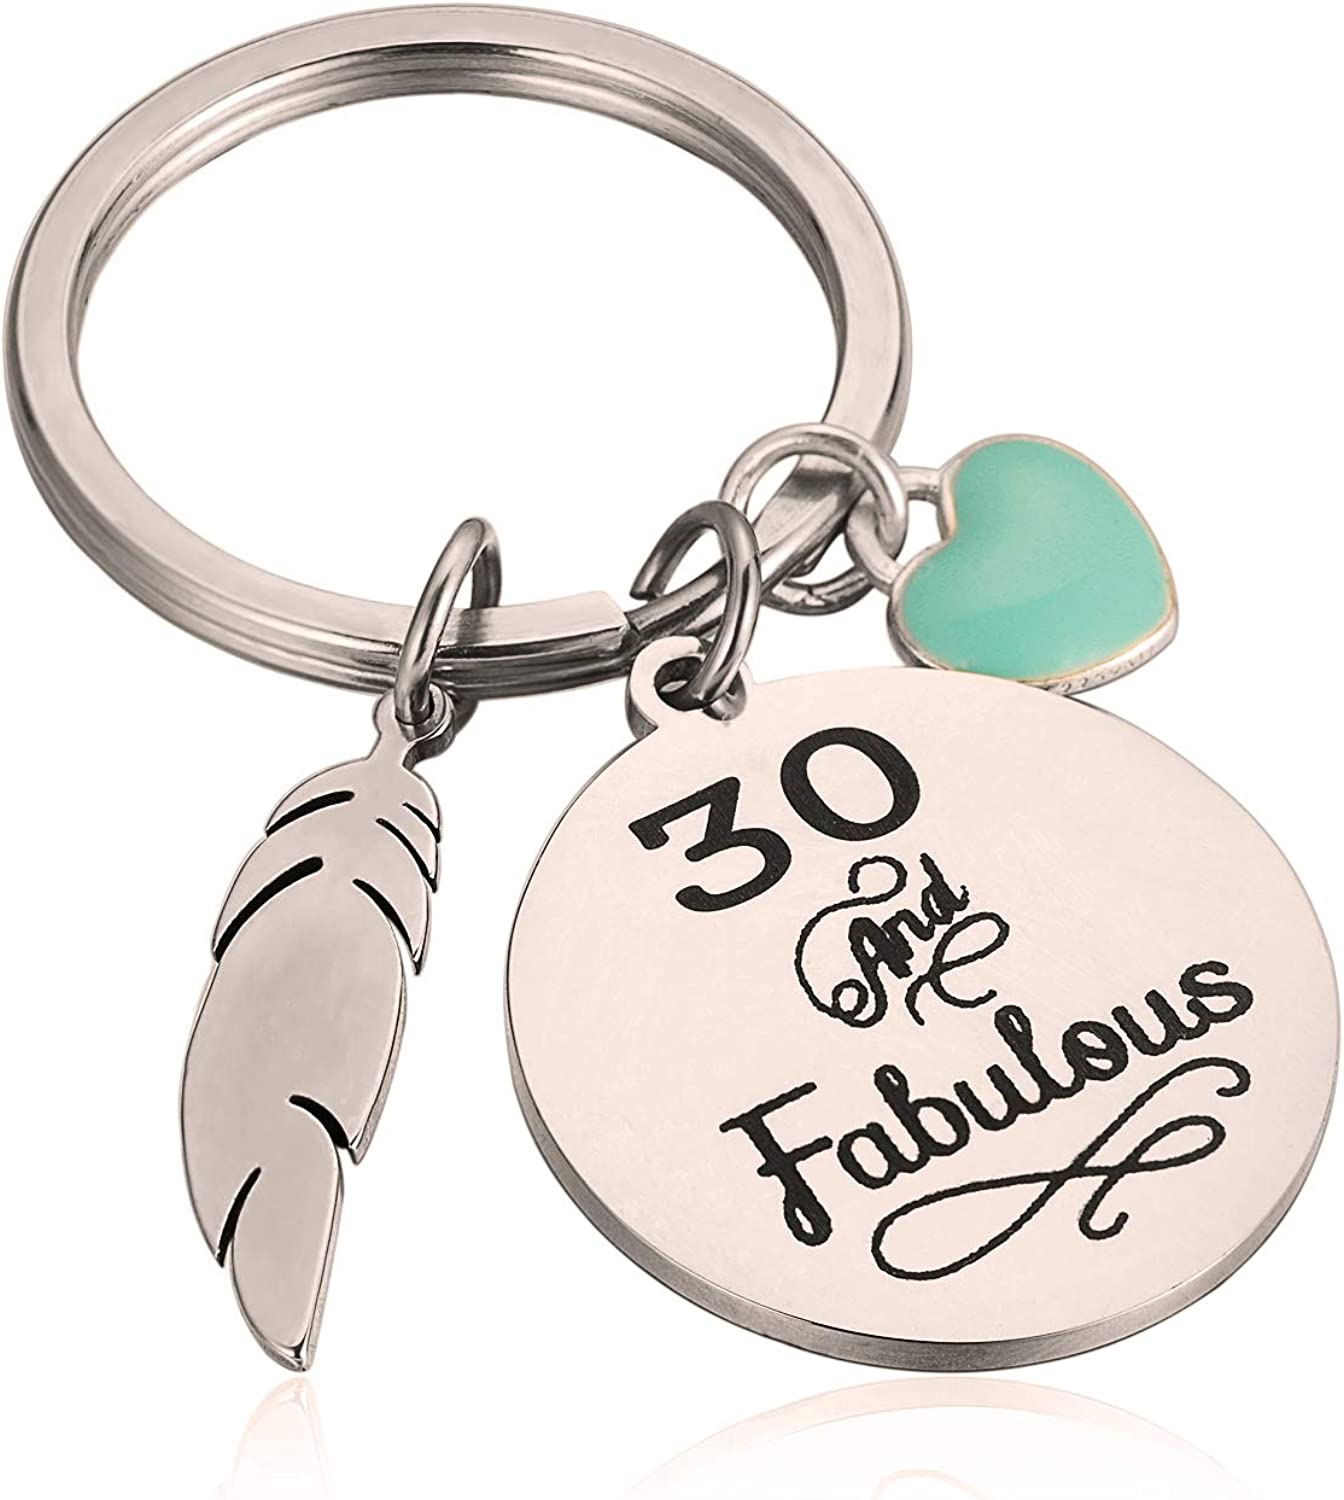 Happy 30th Birthday Gifts 30th Birthday Keychain Gifts for Friends Family 30 Year Old Birthday Presents Turning 30 is a Milestone That Allows You to Feel More Confident